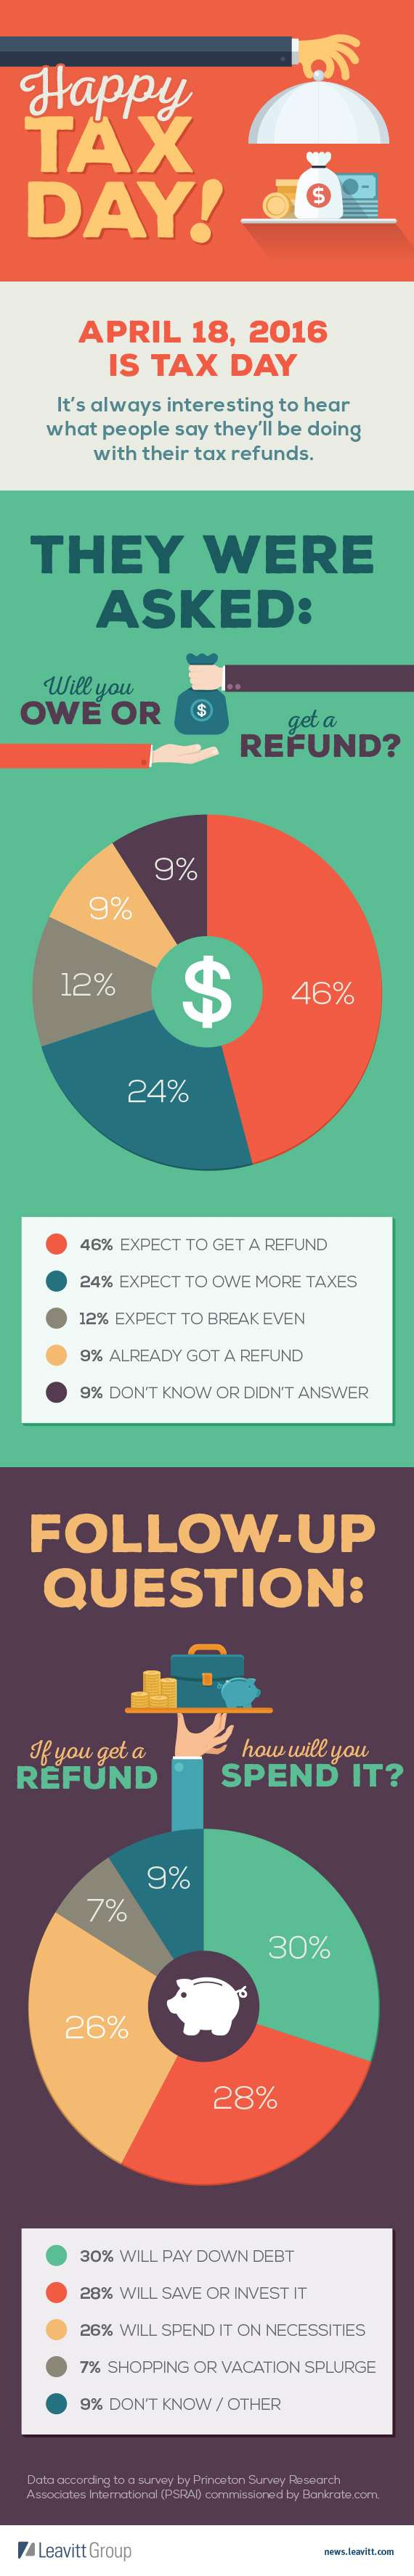 Tax Day - How will you spend your tax refund?